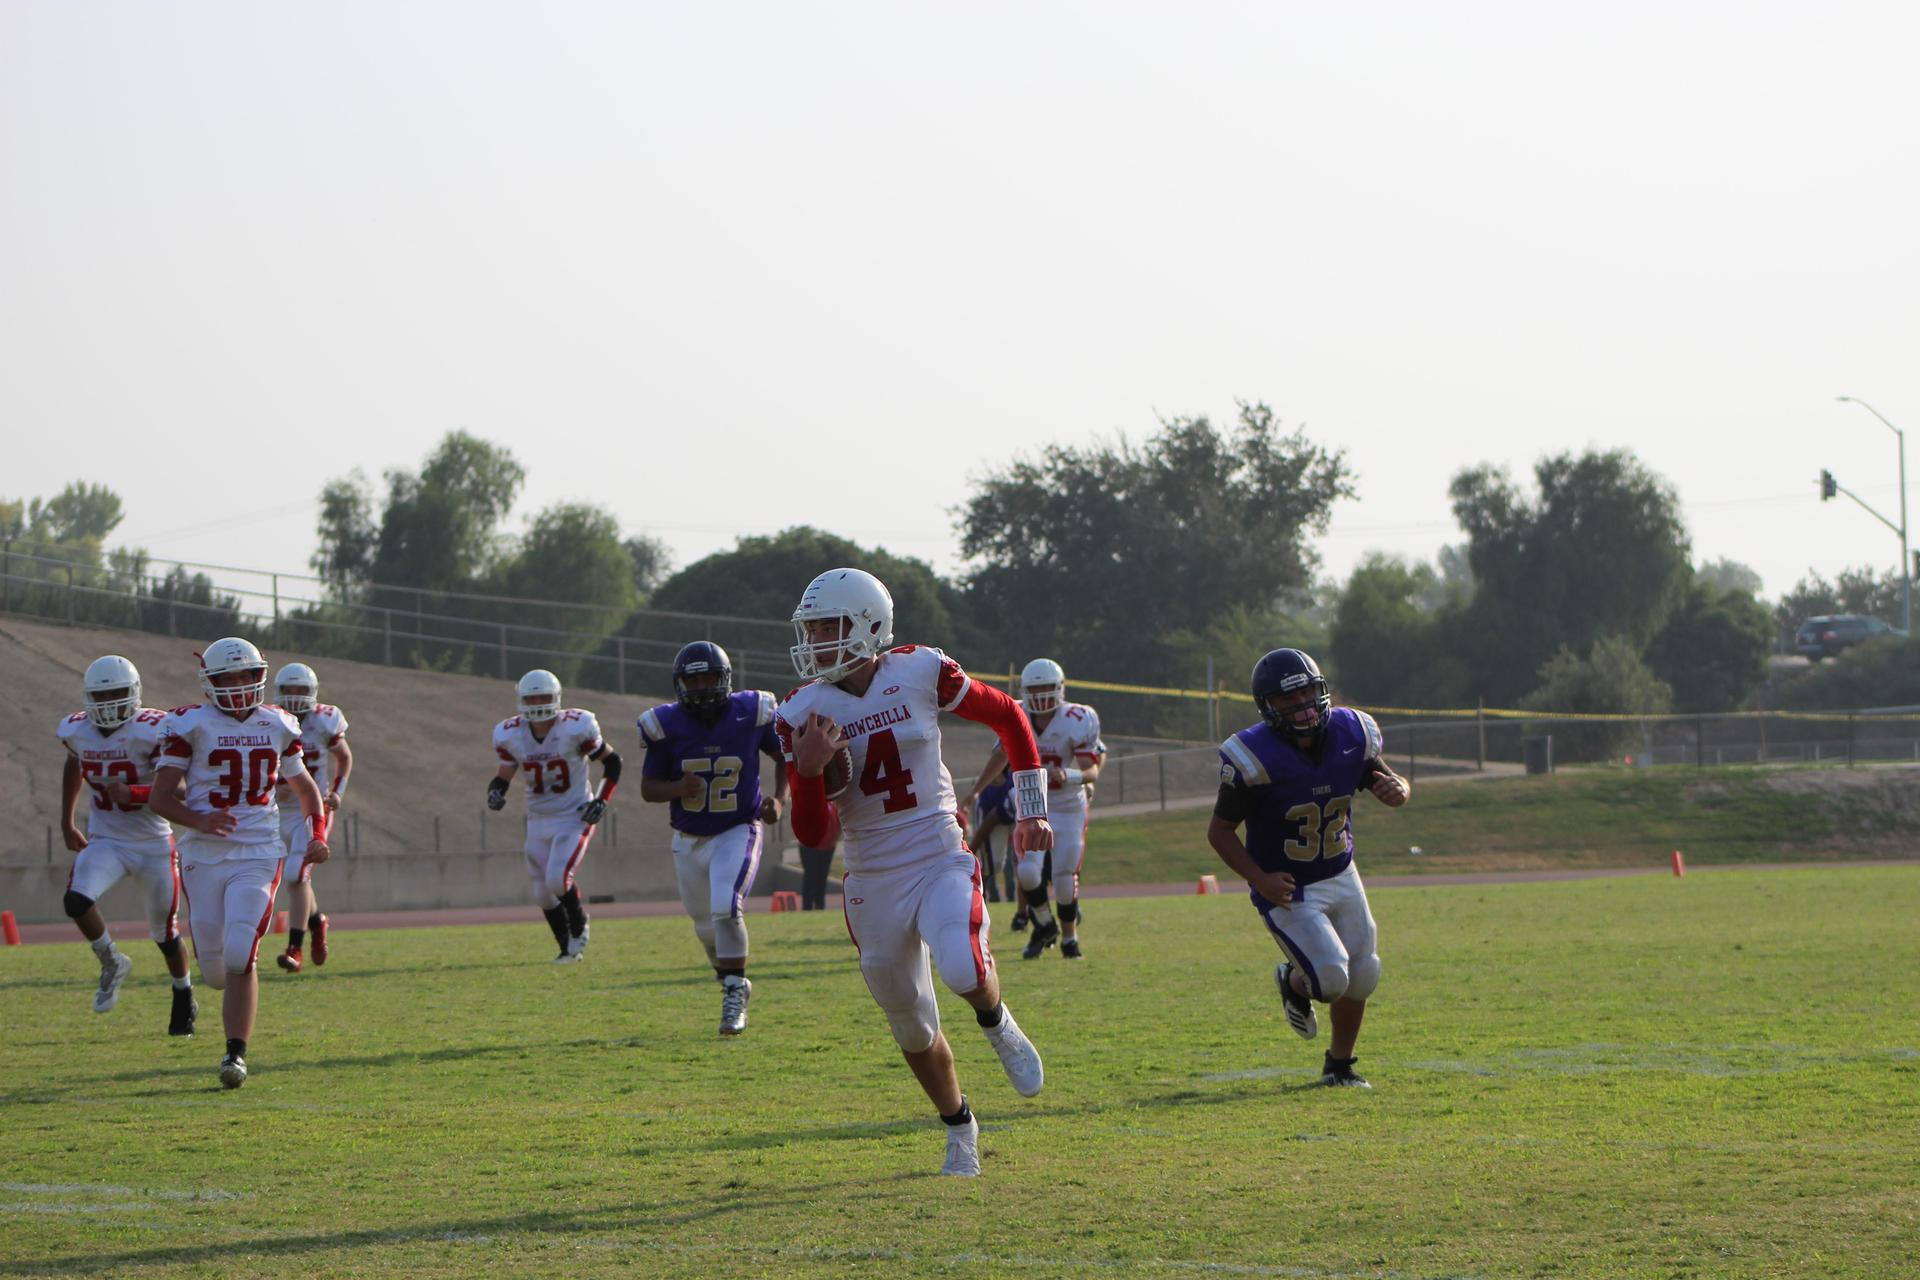 JV Football Players at Lemoore